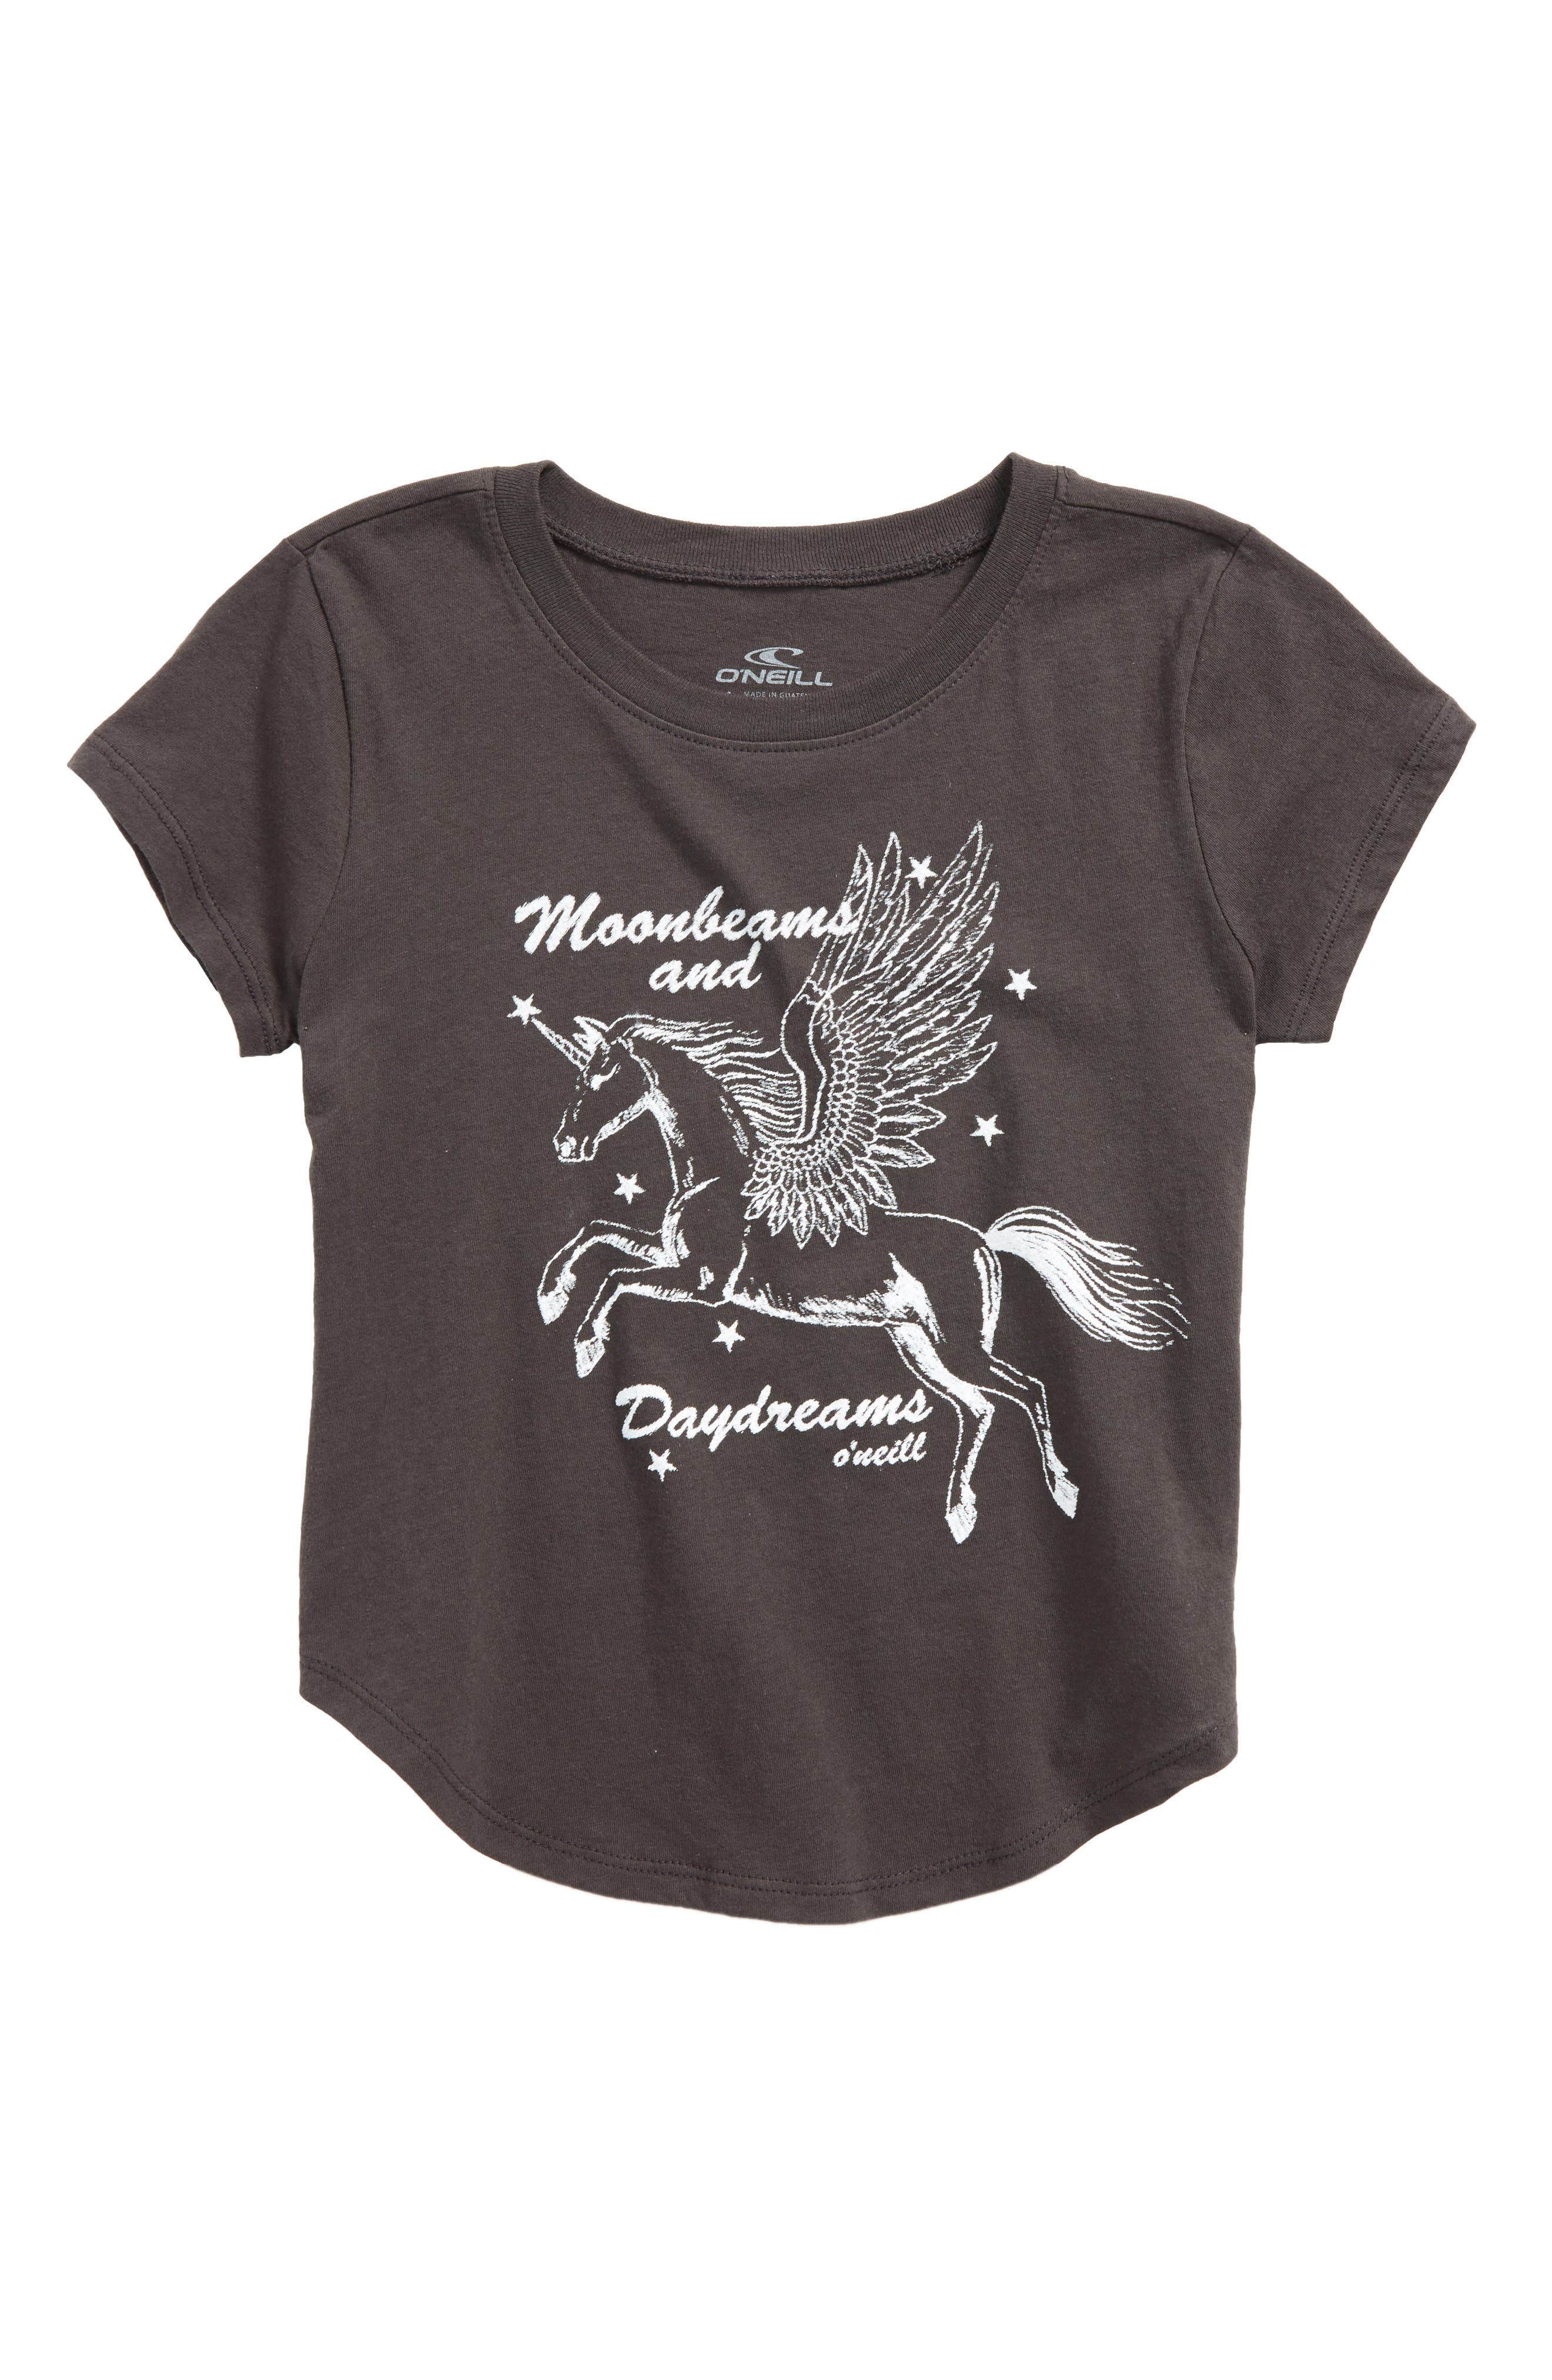 O'Neill Moonbeams and Daydreams Graphic Tee (Toddler Girls & Little Girls)